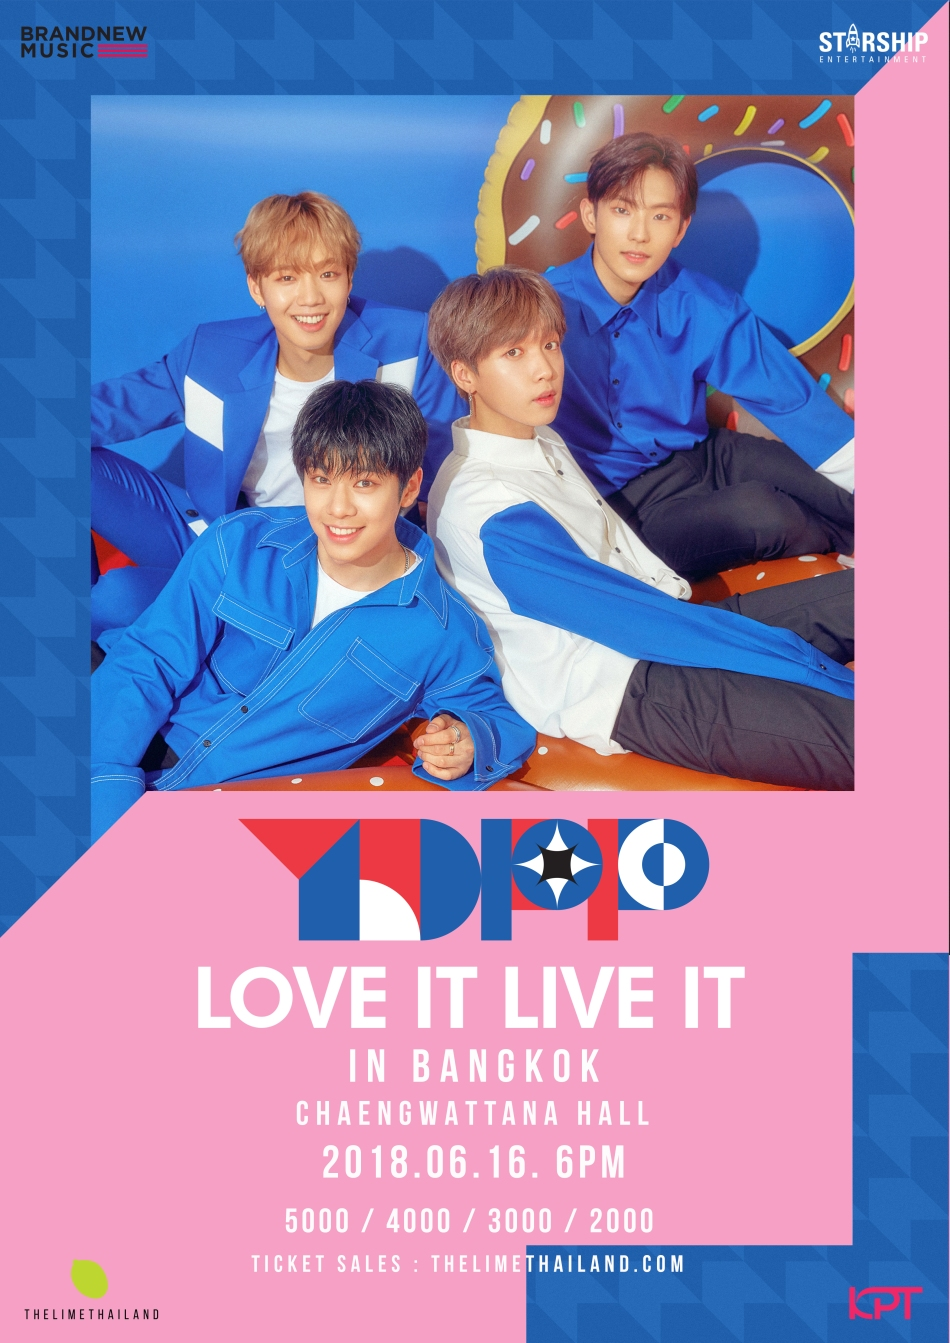 YDPP LOVE IT LIVE IT IN BANGKOK 2018